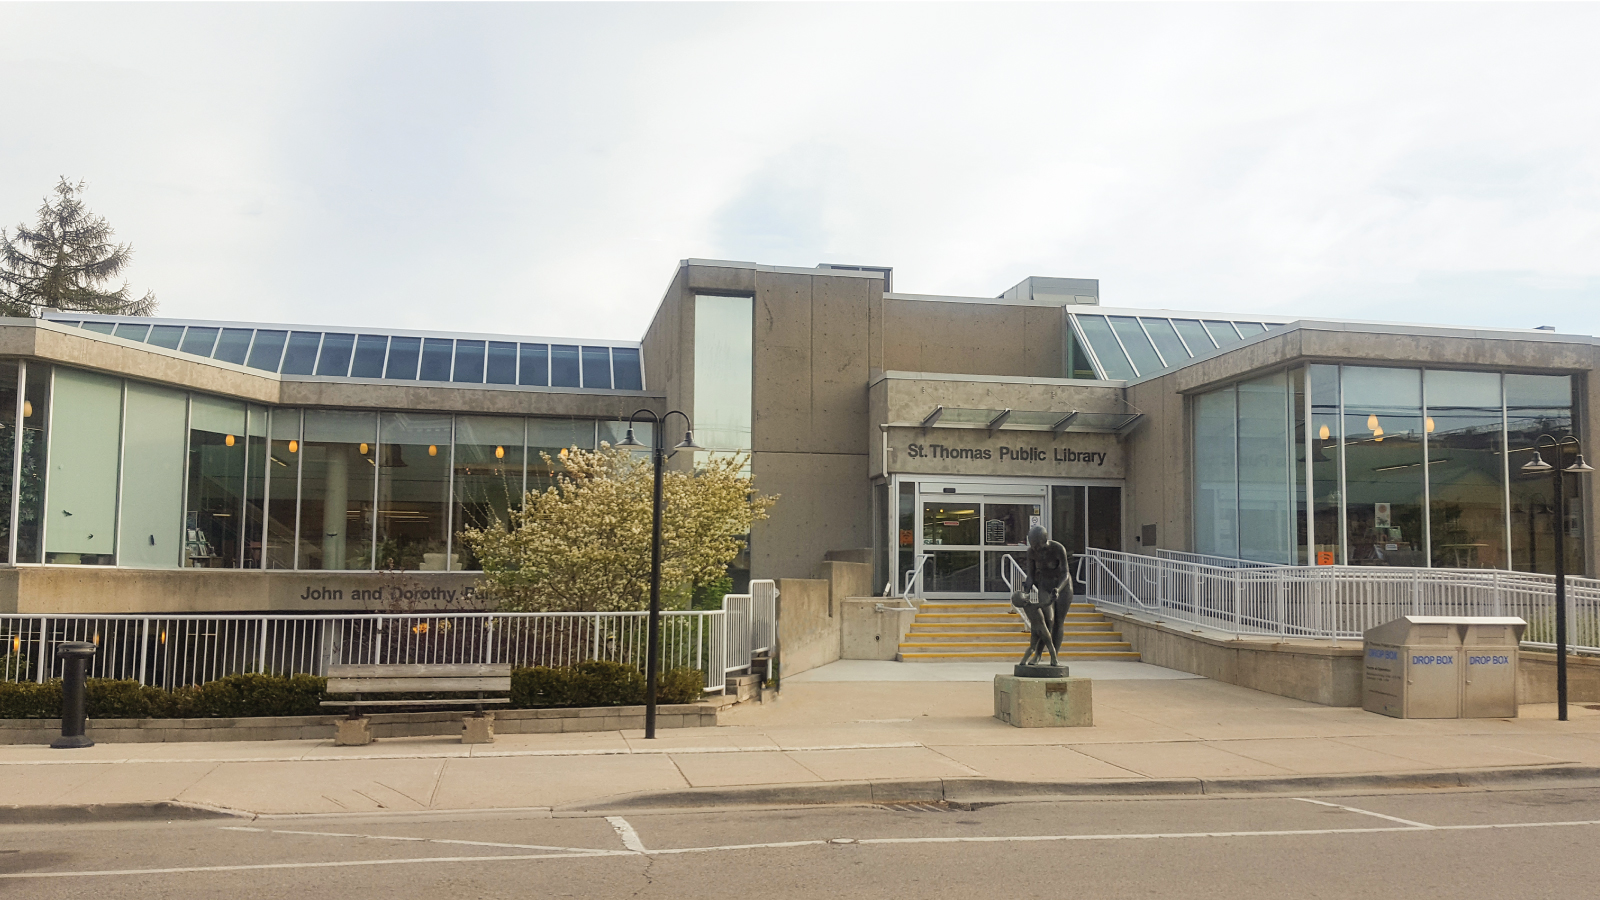 library building, a large grey concrete building with big windows, greenery, and a statue out front of a mother and child